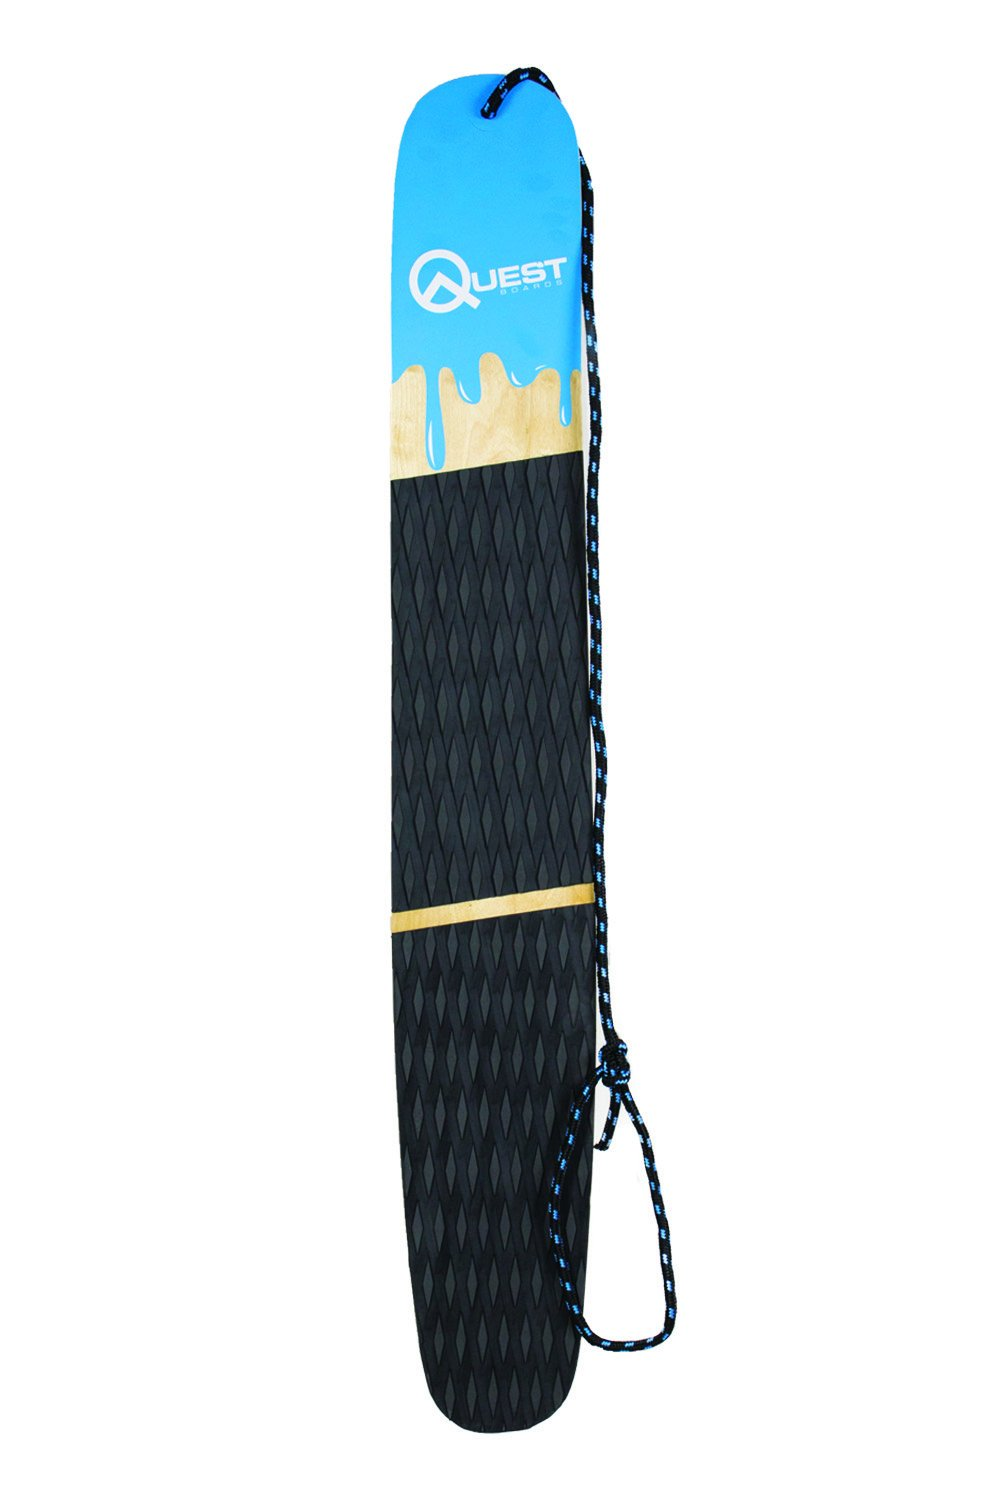 Quest SnoSk8 Board, 48'' by Quest